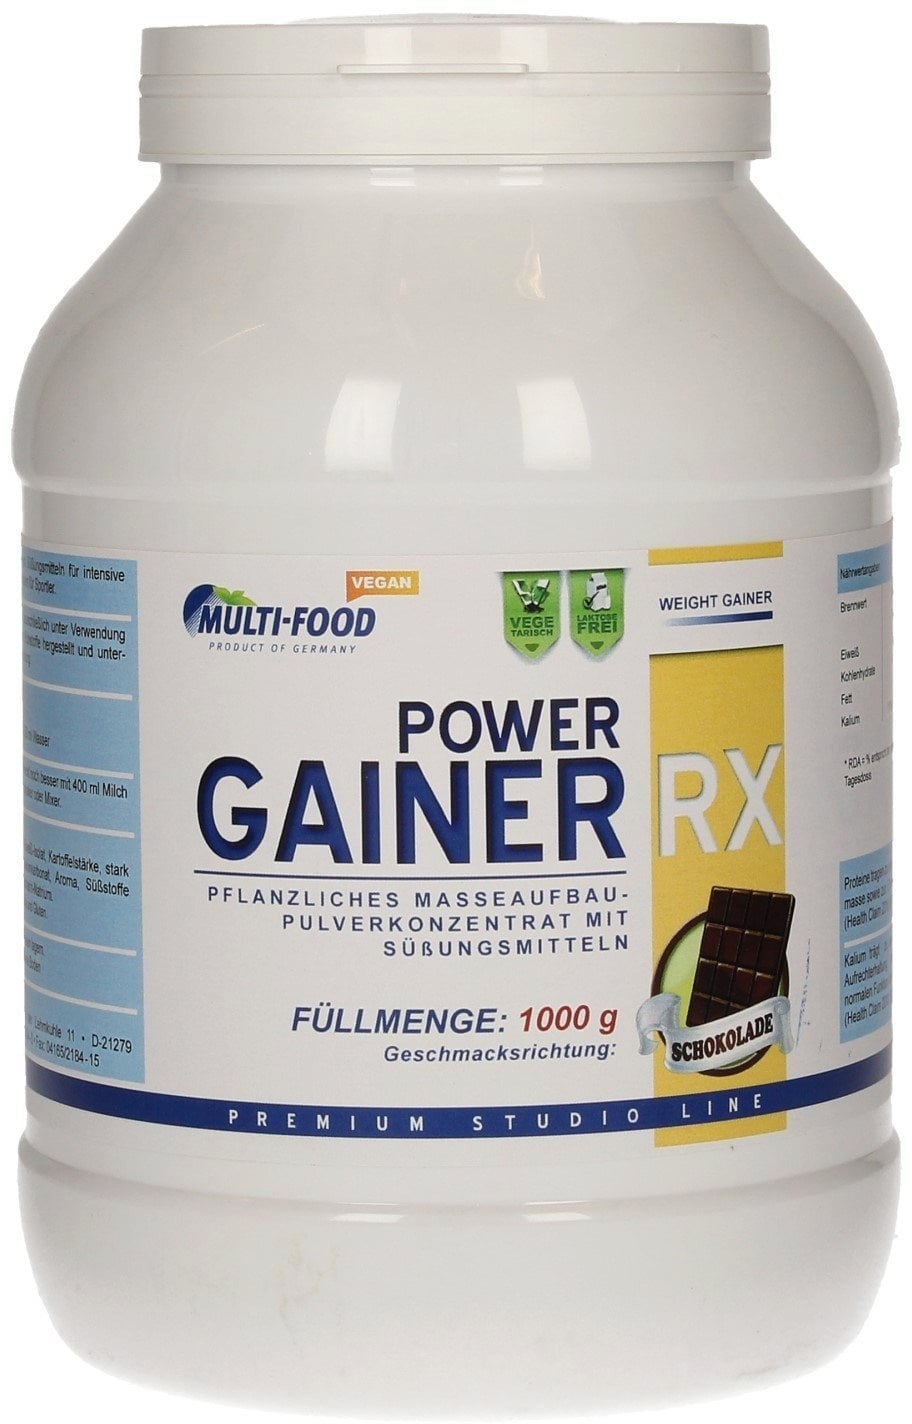 Multi-Food POWER GAINER VEGAN, 1000g Dose - Schoko